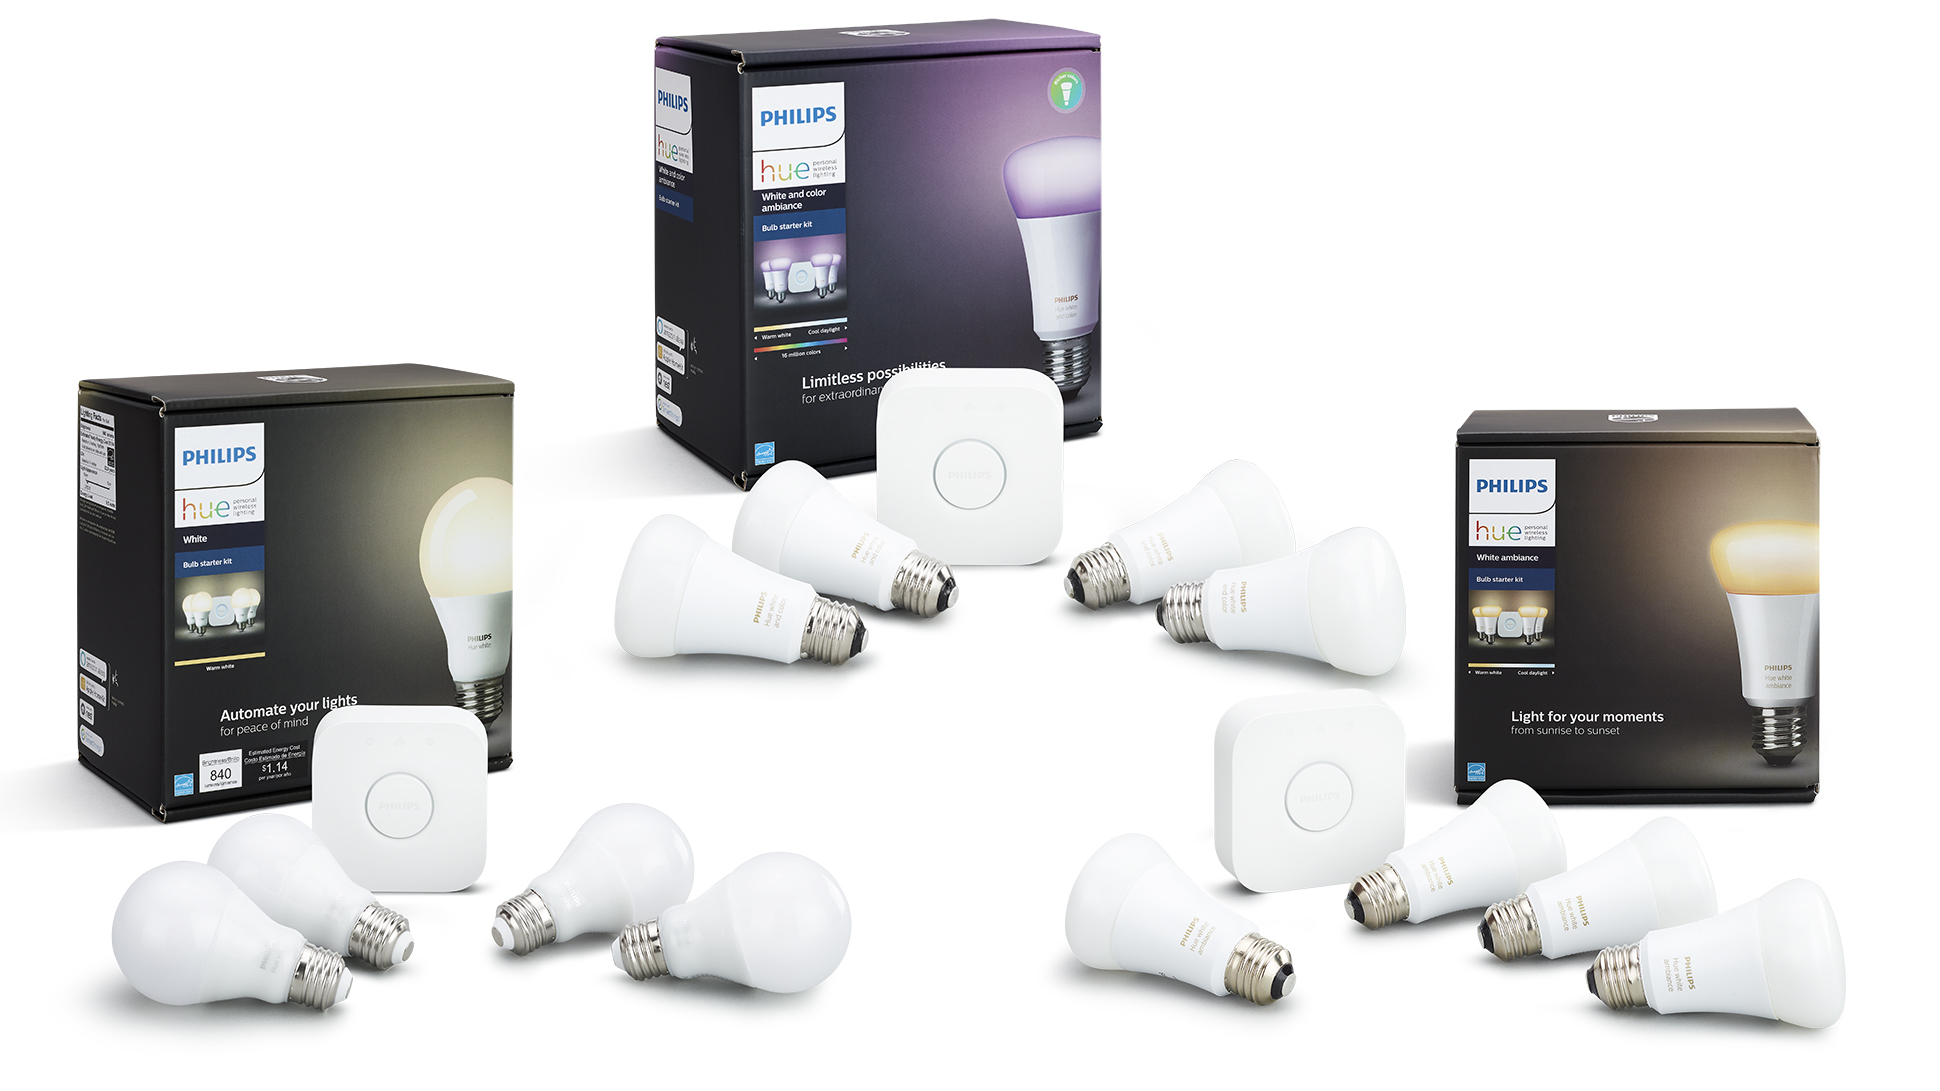 Philips Hue light kits now give you more for your money | TechRadar